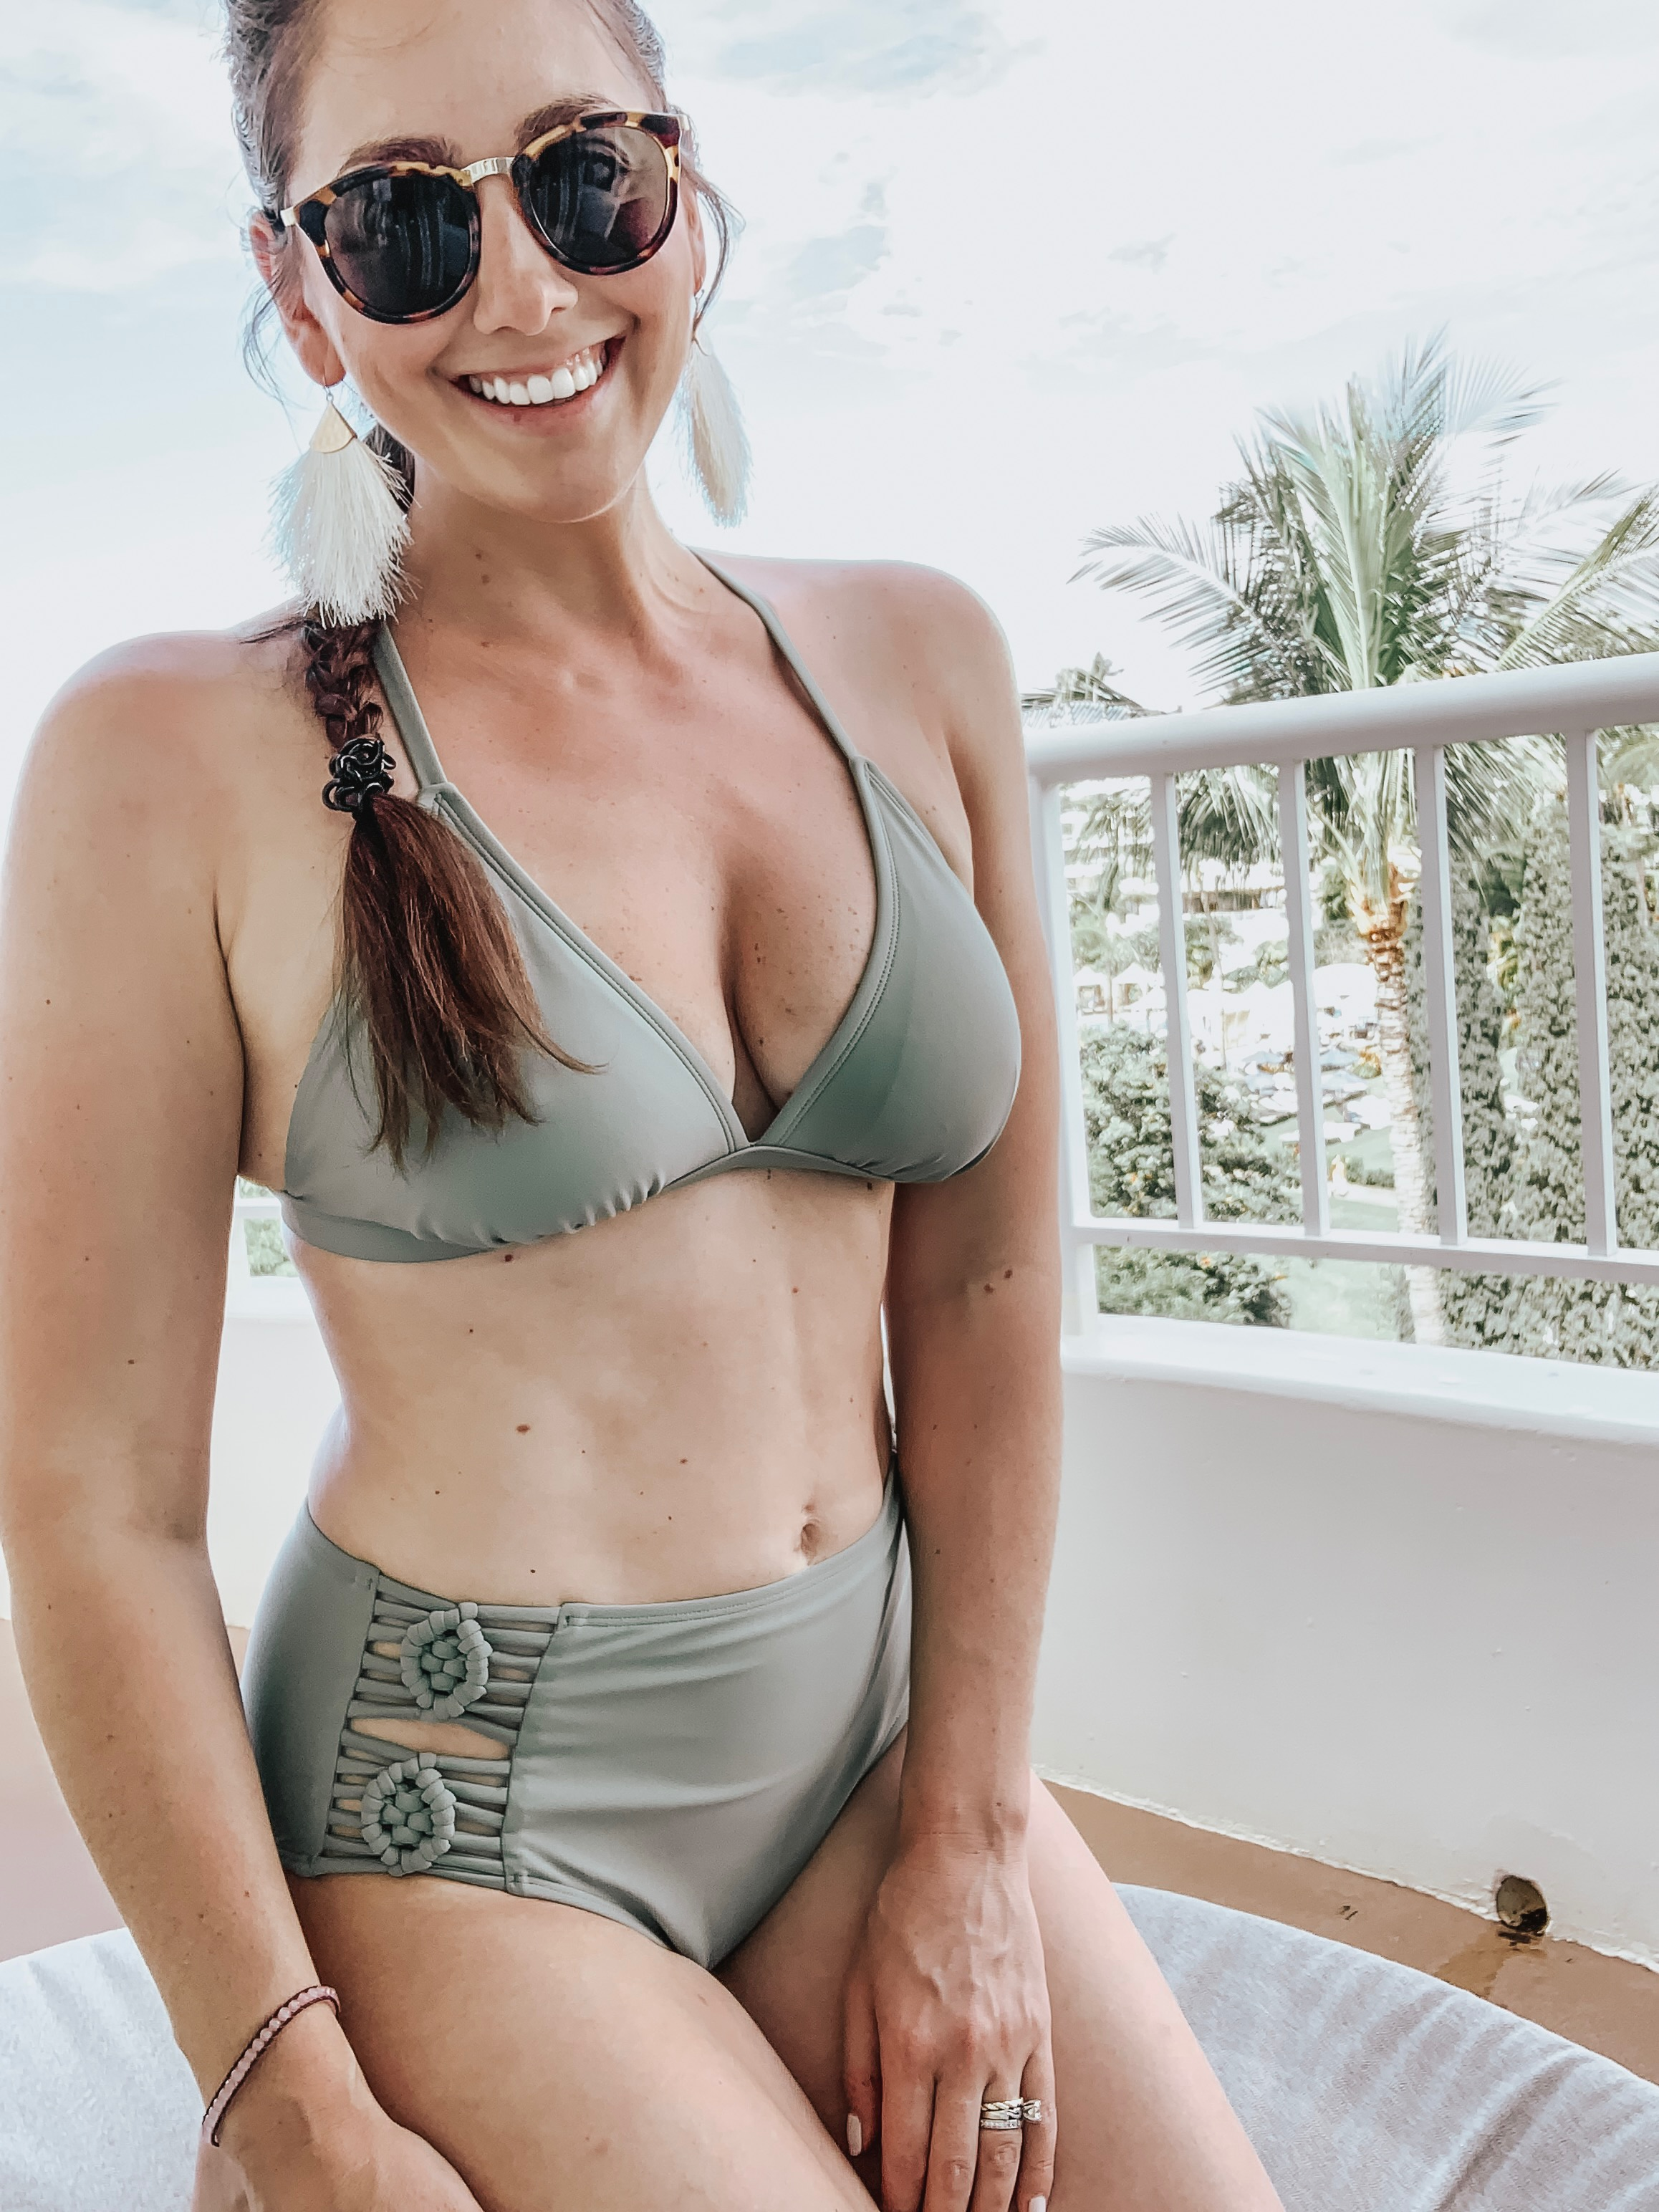 Looking for the perfect swimsuit to make you feel confident with your mom bod? Here are some of the best modest swimsuits for new moms! Plua great coverups!